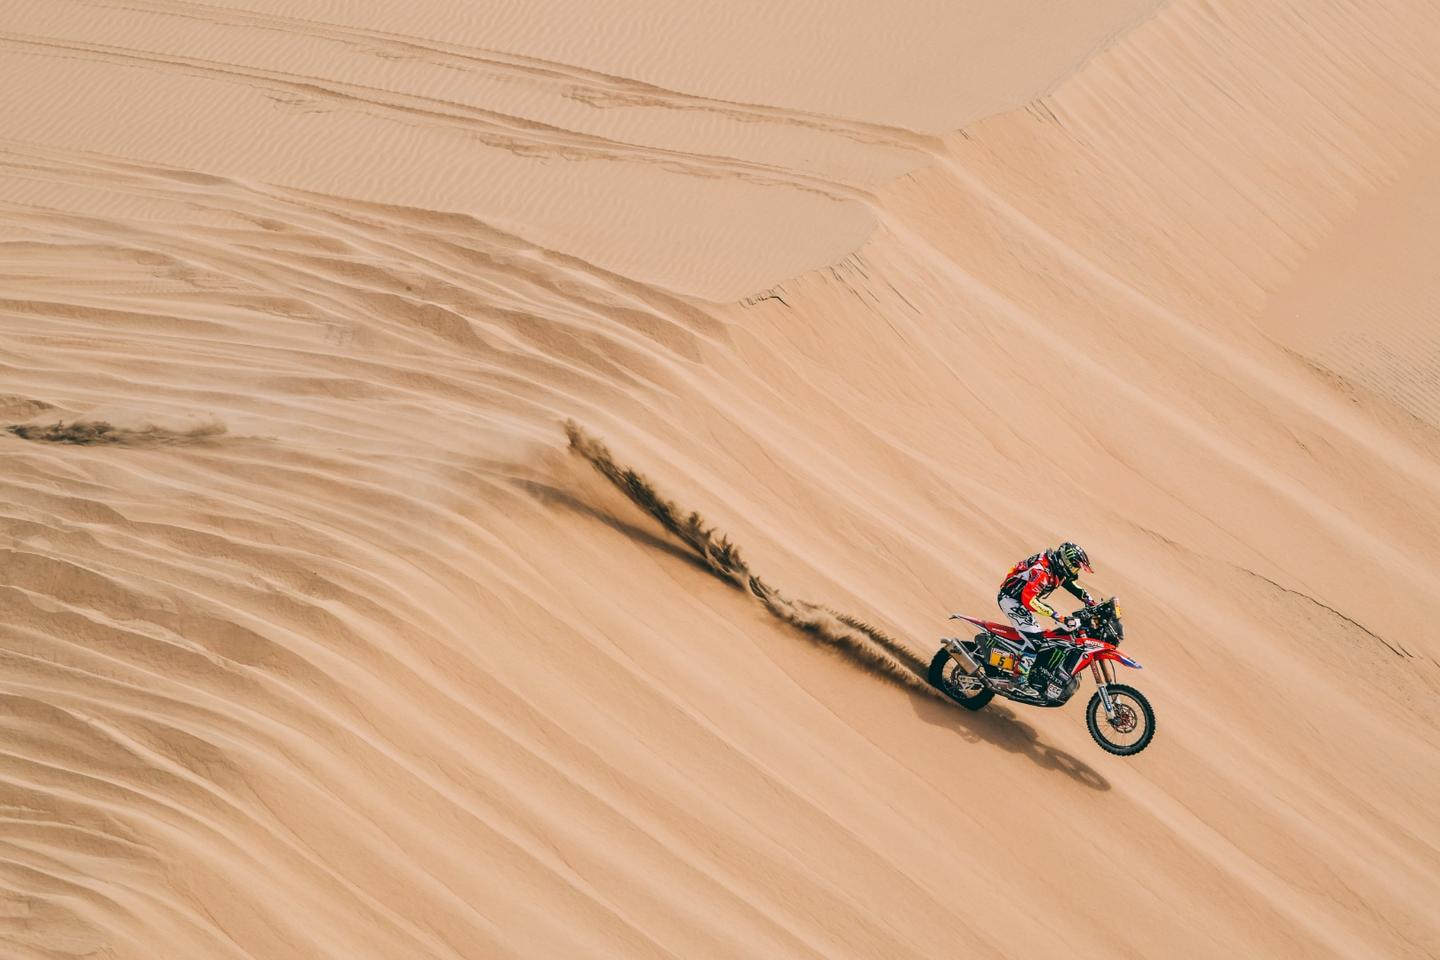 Honda is scrambling to end KTM's 18 years of Dakar dominance